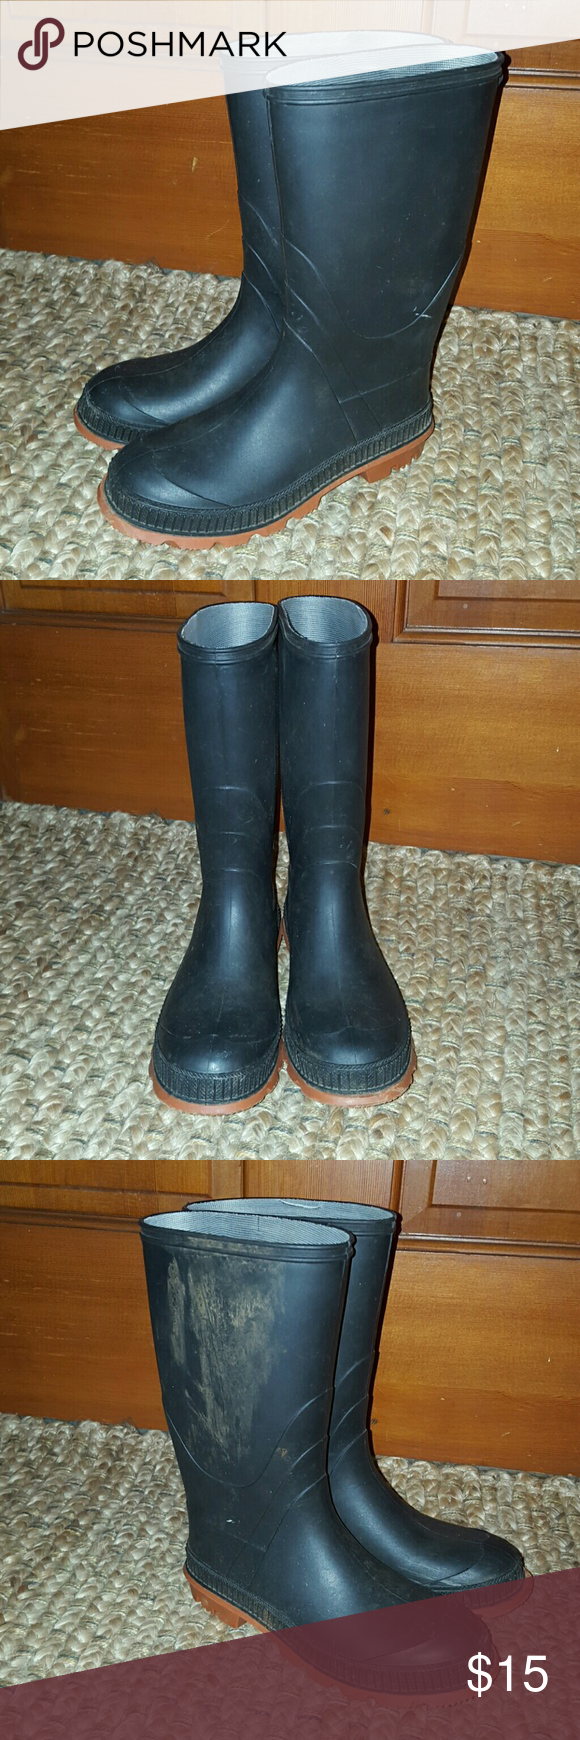 Boy's Muck Boots Worn by my son one season. Very durable boots! Made in USA Shoes Boots